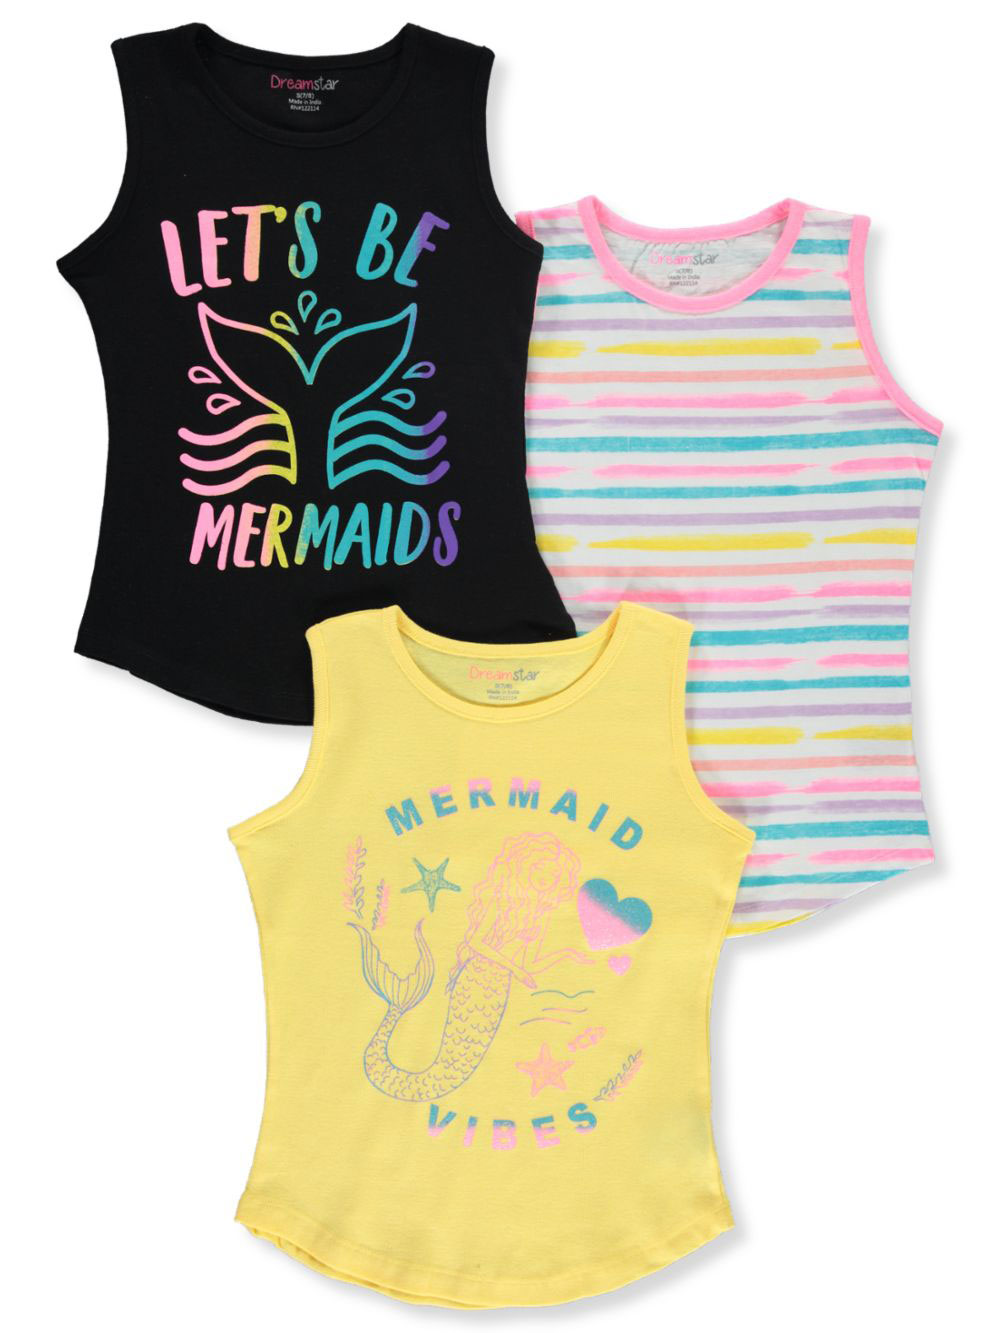 Size 7-8 Tank Tops for Girls